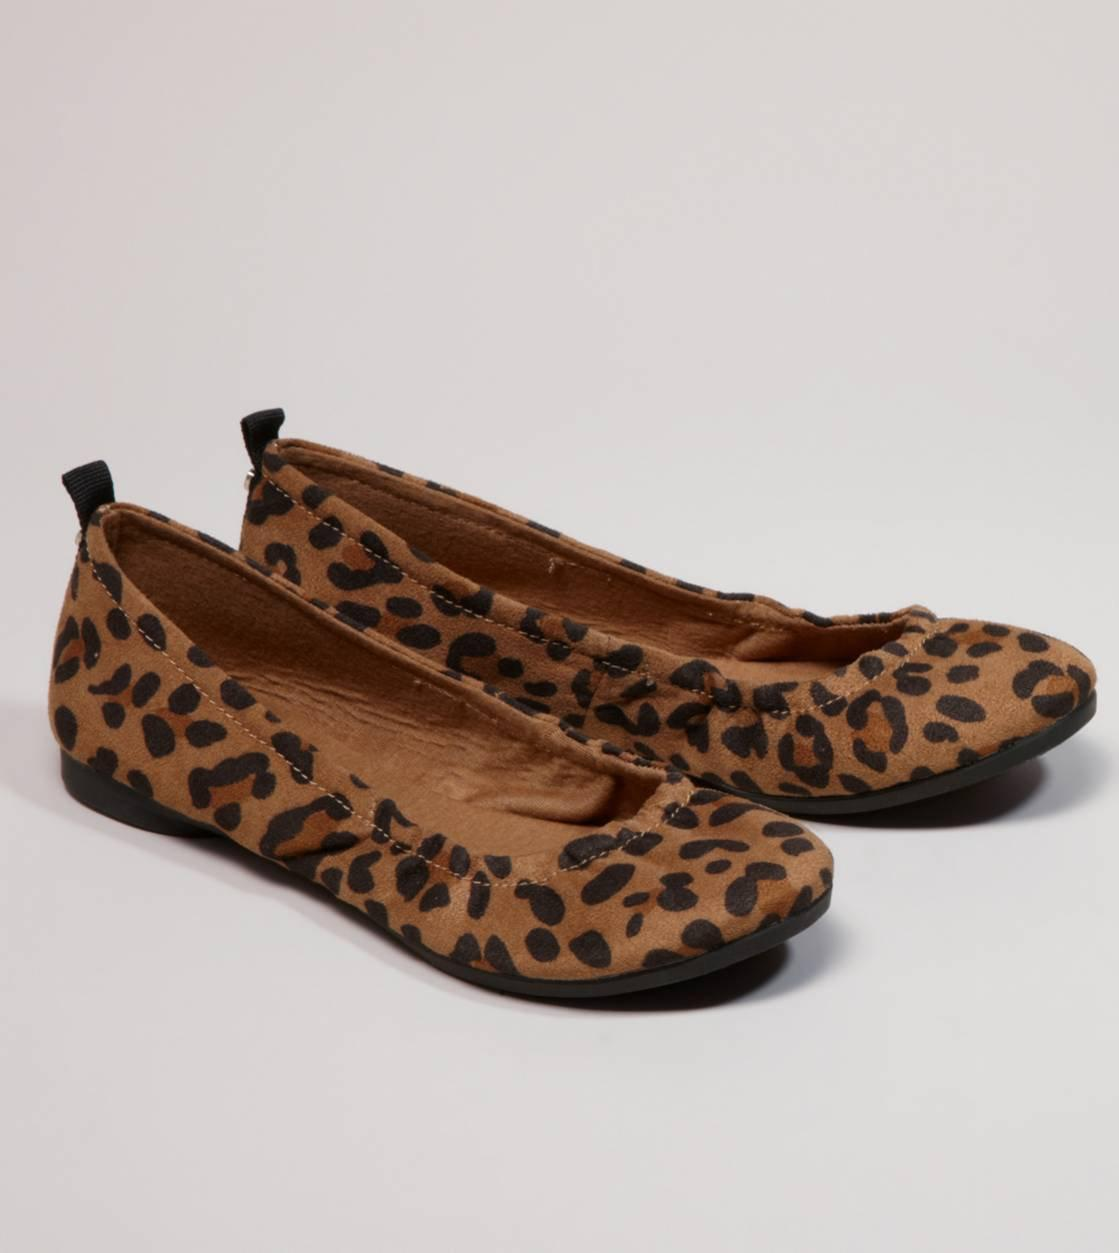 Aeo leopard print ballet flat american from american eagle